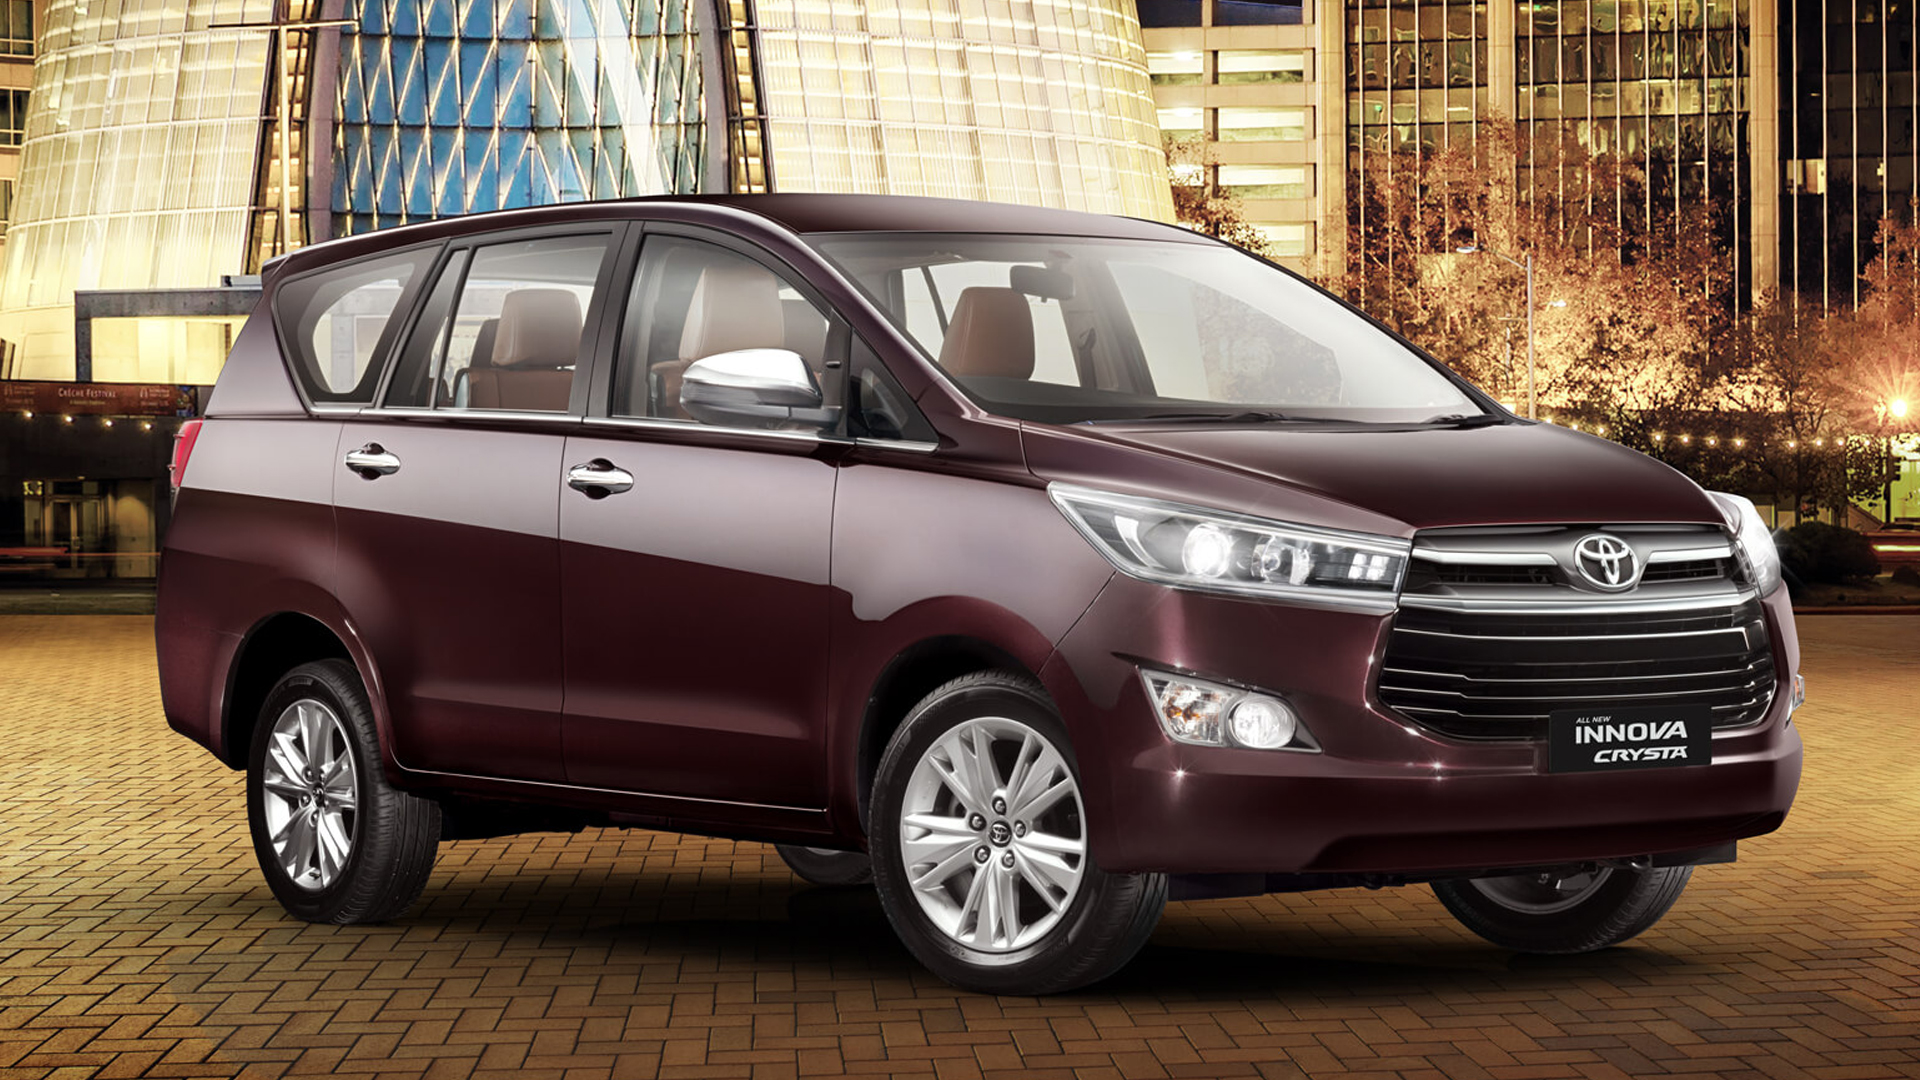 Toyota Innova Crysta 2020 2.4 ZX AT 7 Str